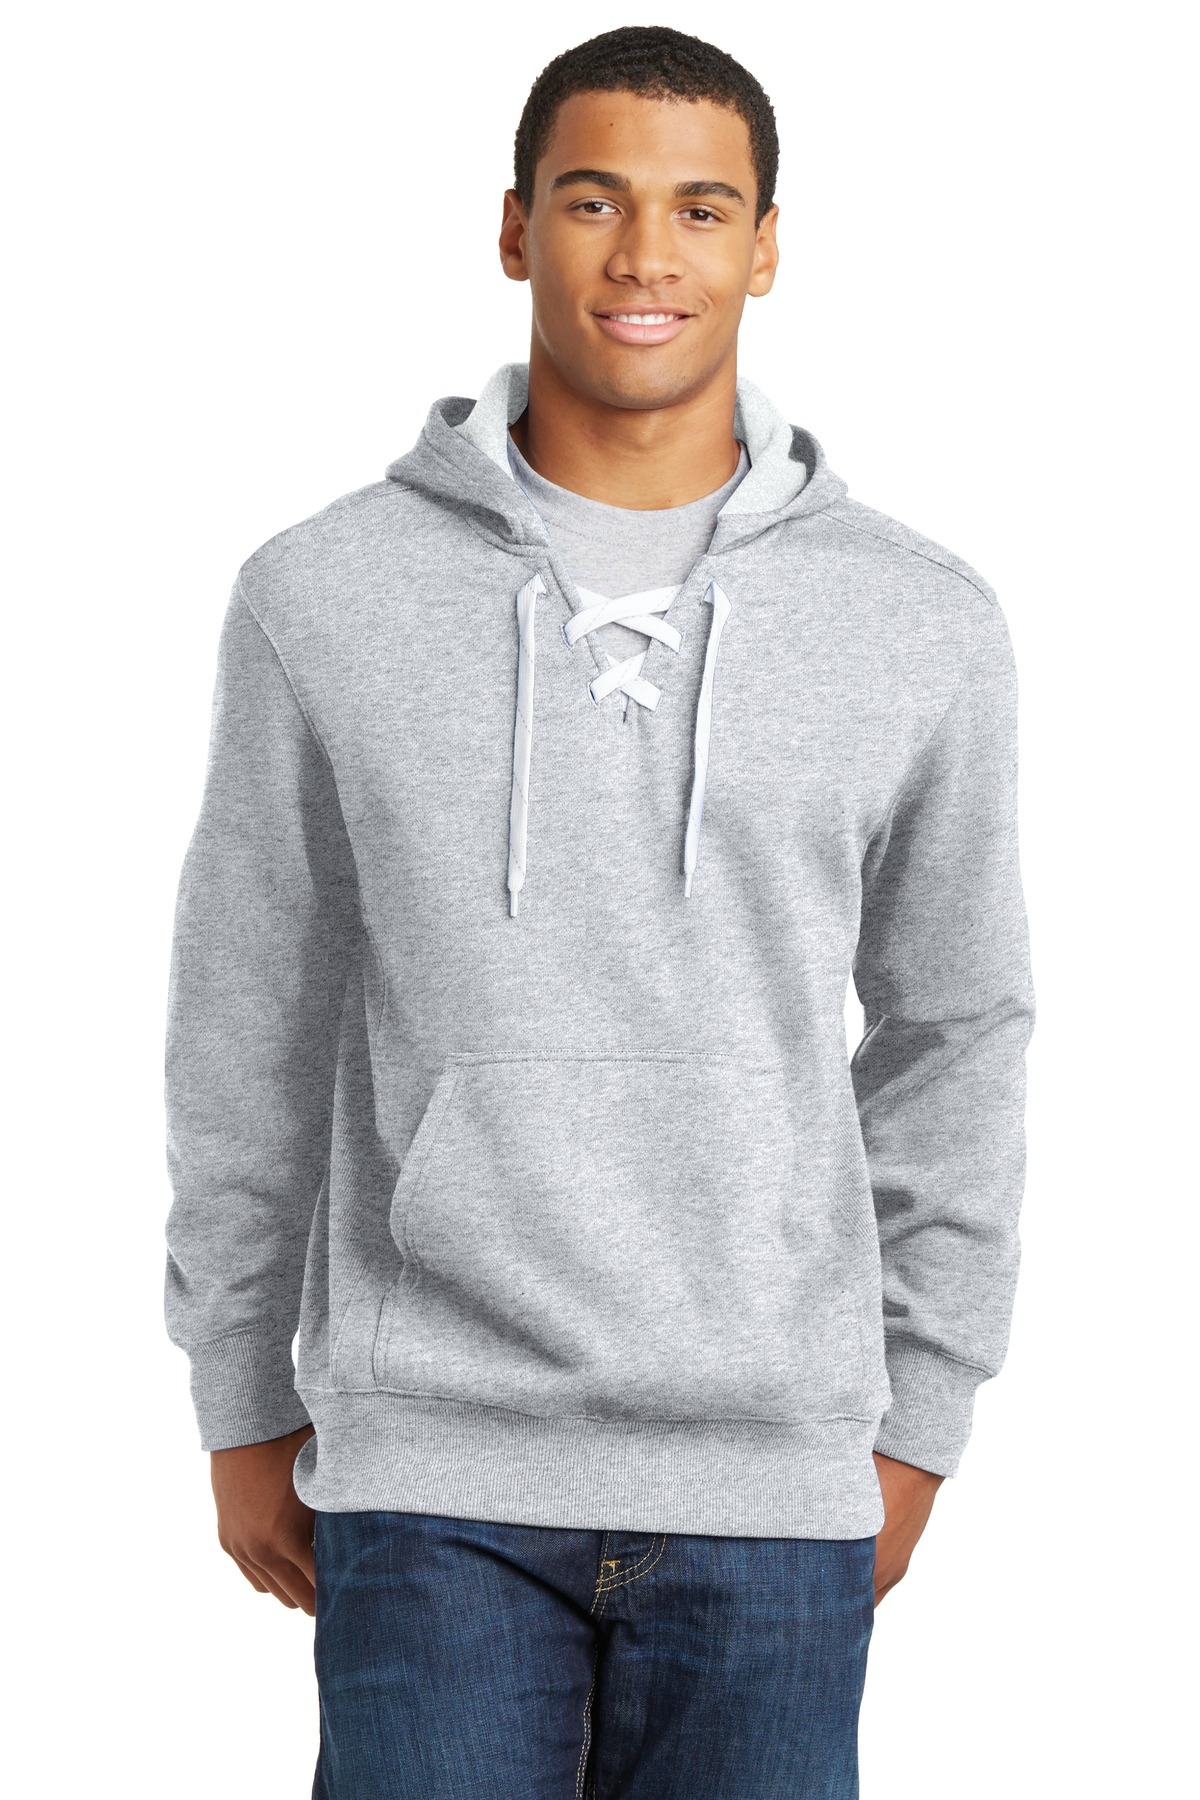 Sport-Tek® ST271 - Lace Up Pullover Hooded Sweatshirt - Men's Fleece